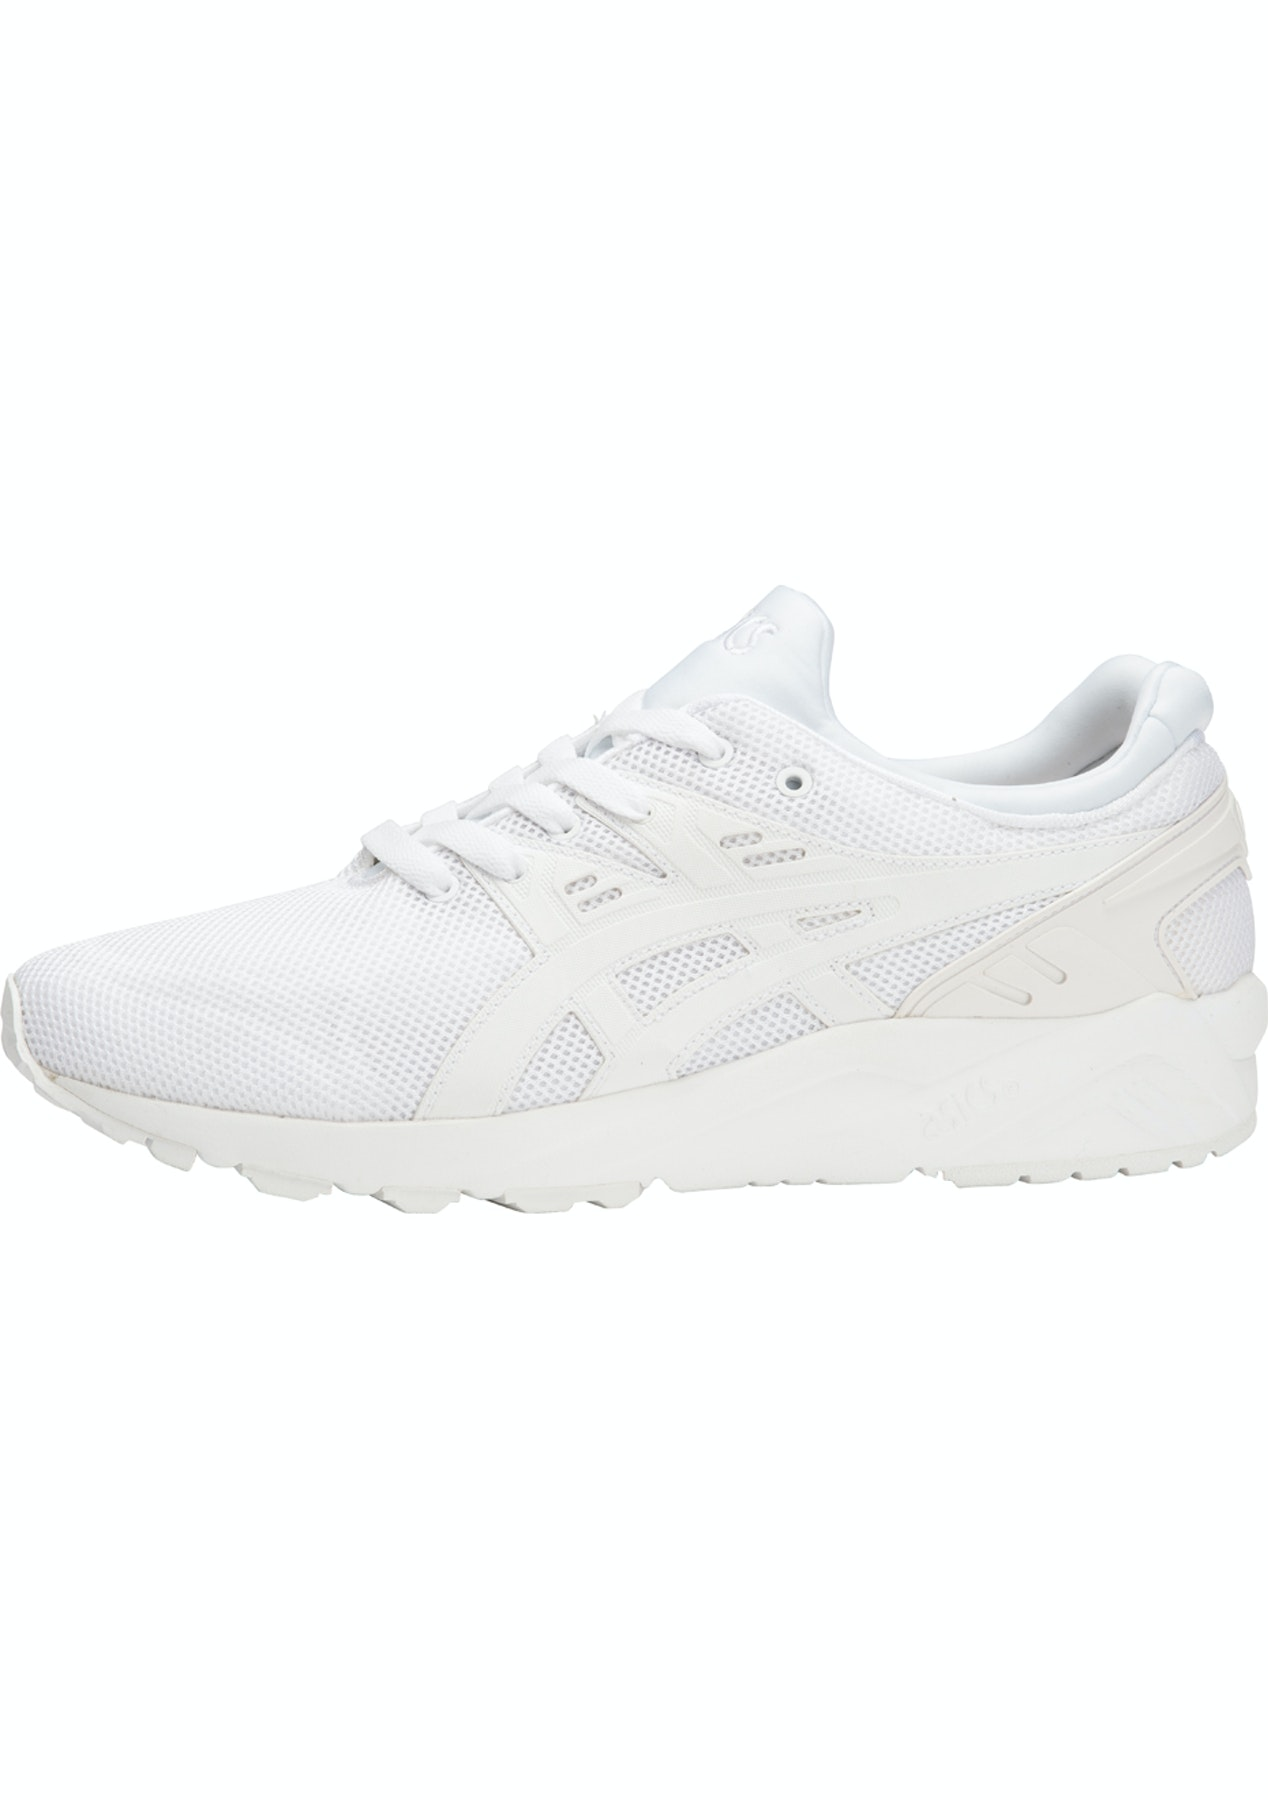 premium selection f7990 4bc15 Asics Tiger - Gel-Kayano Trainer Evo White/White 4